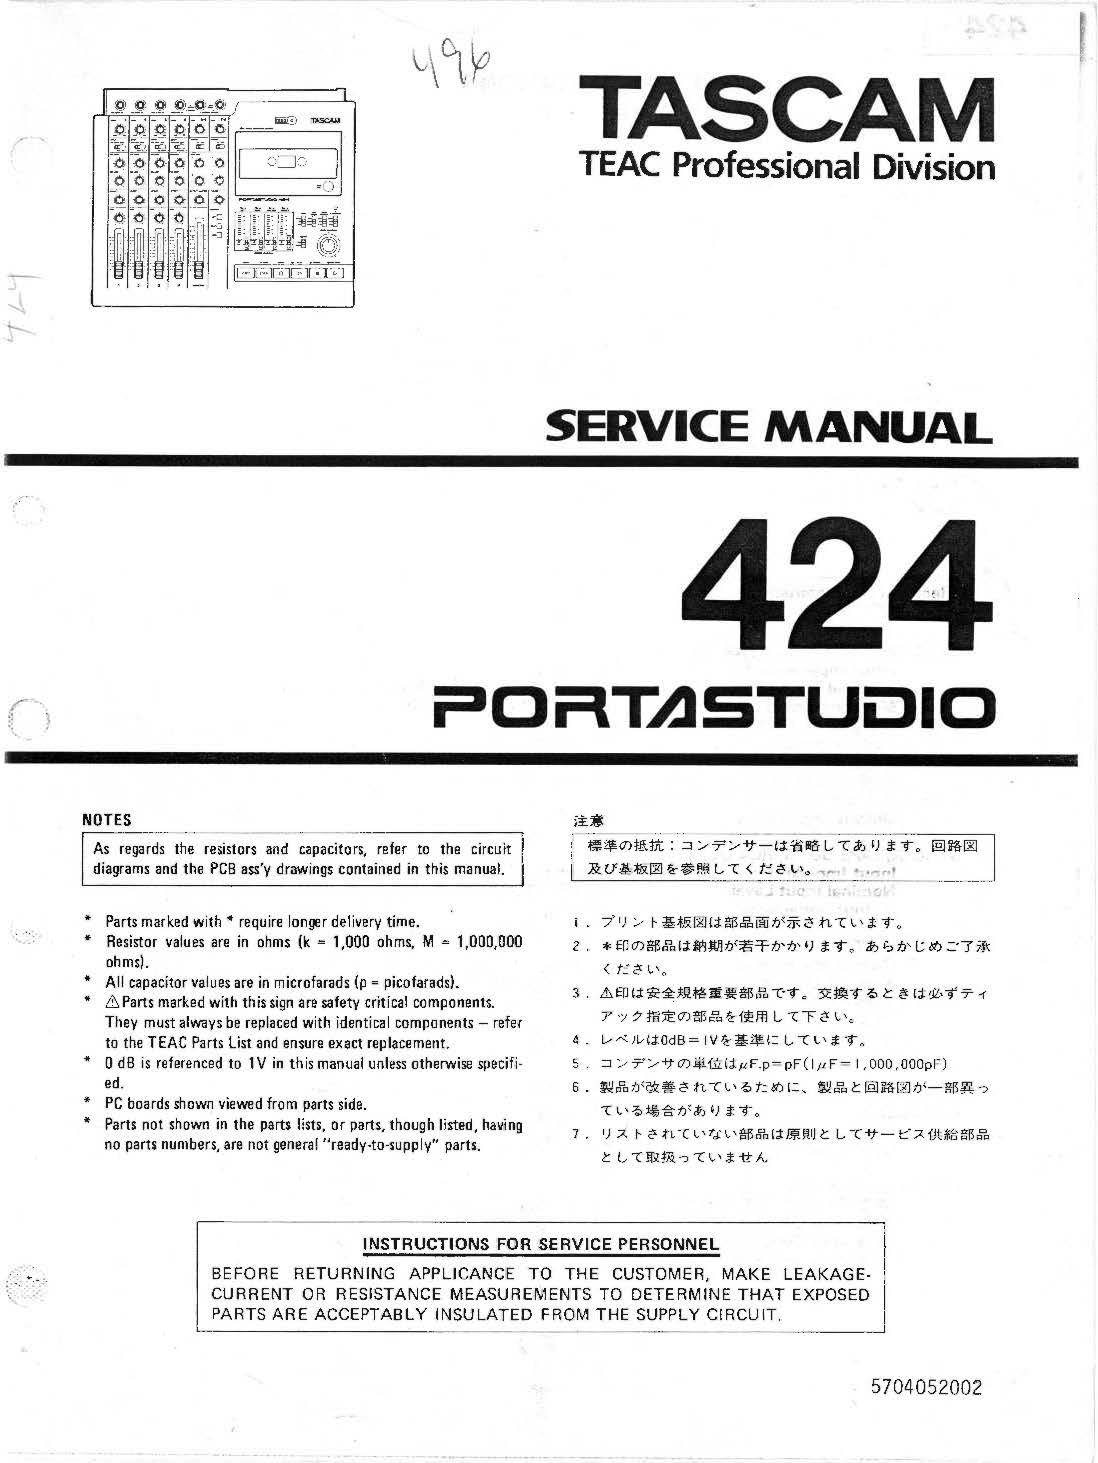 Tascam 424 manual | compact cassette | information storage.